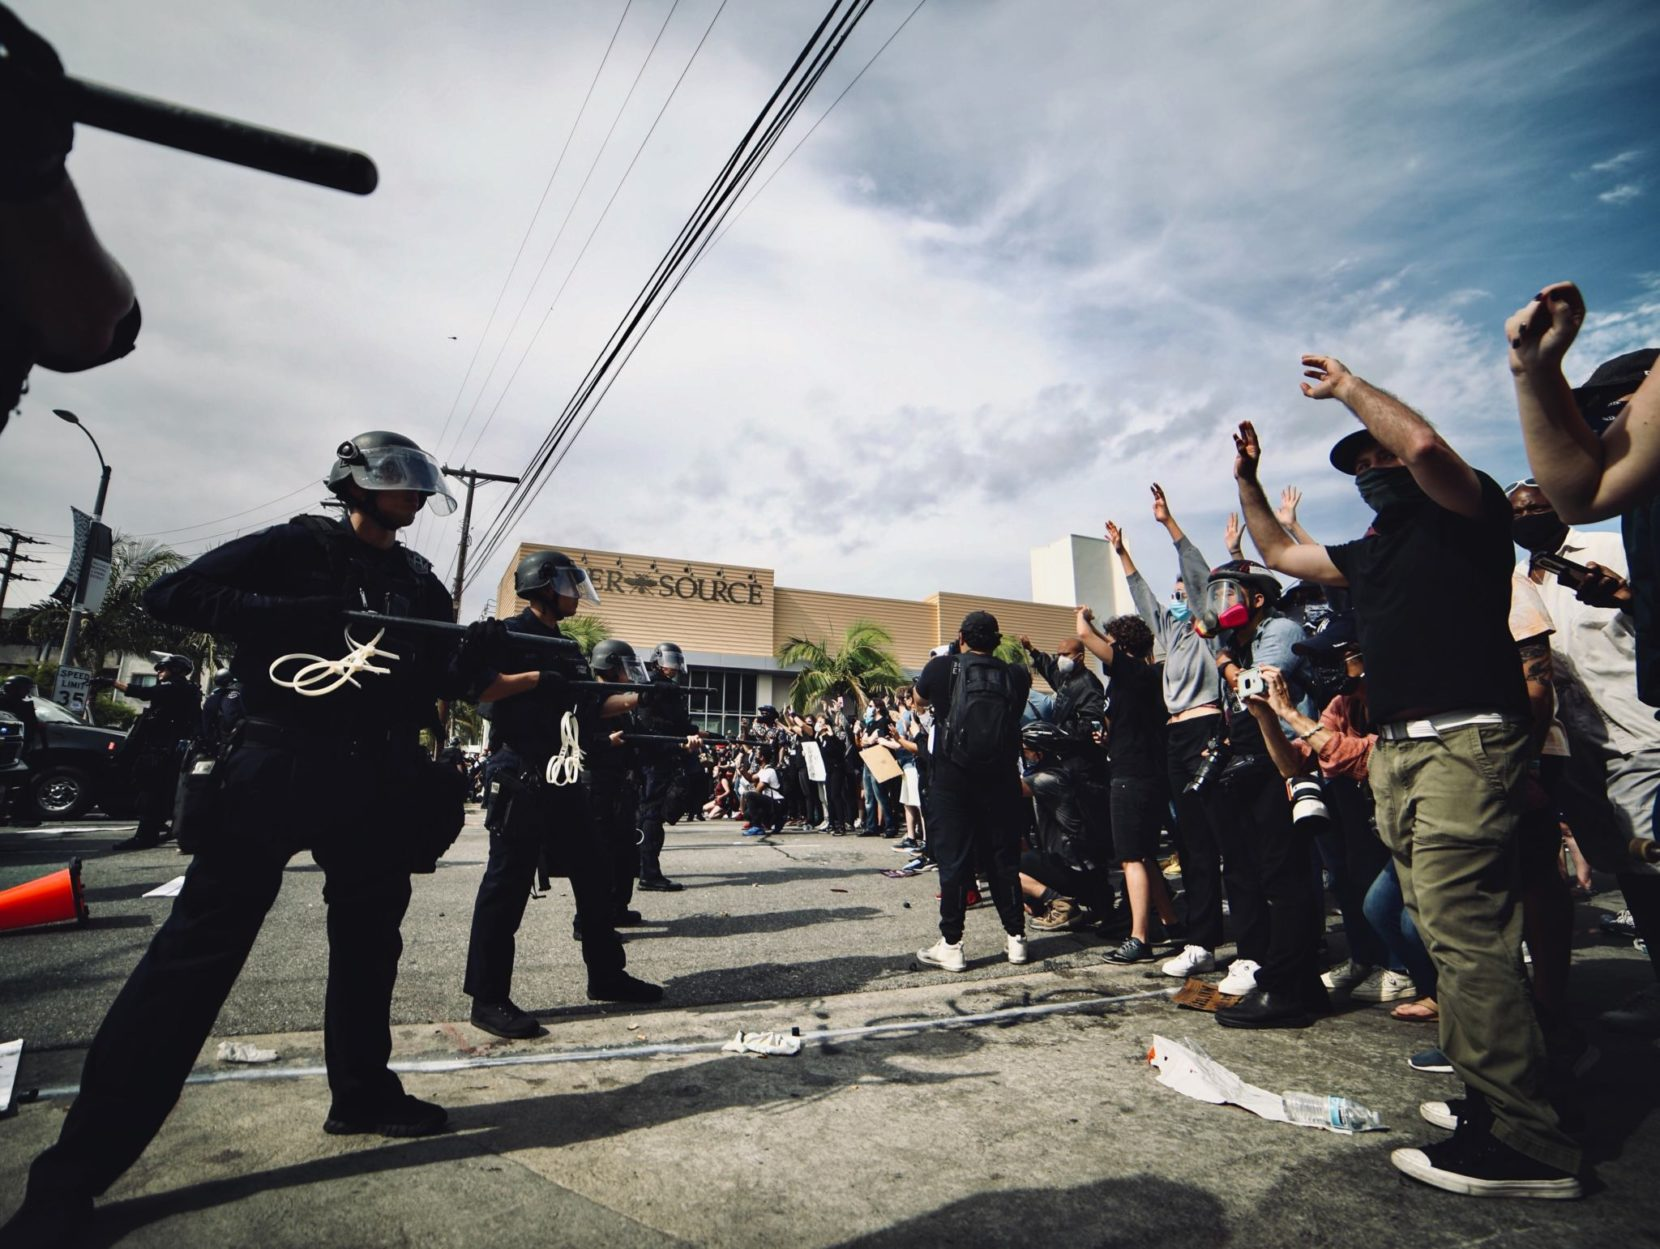 Protests in the area –where to go and staying safe